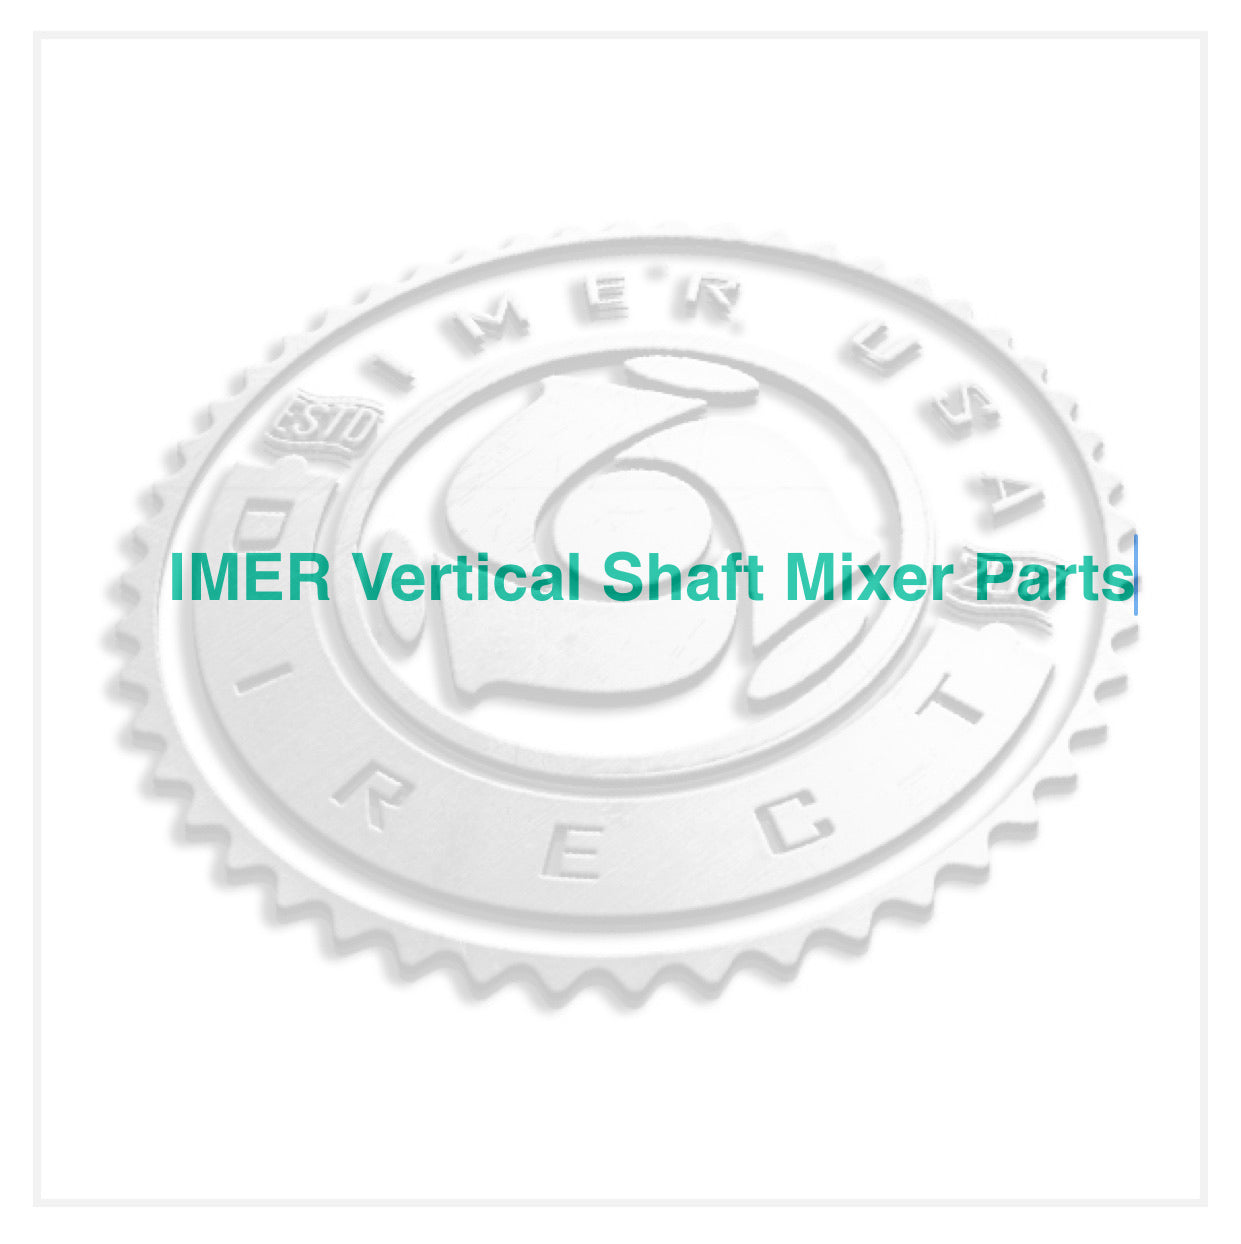 IMER Part Number 3211675 - Rubber for Horizontal Outer Paddle.- MIX 750/360 Vertical Shaft Mixers.